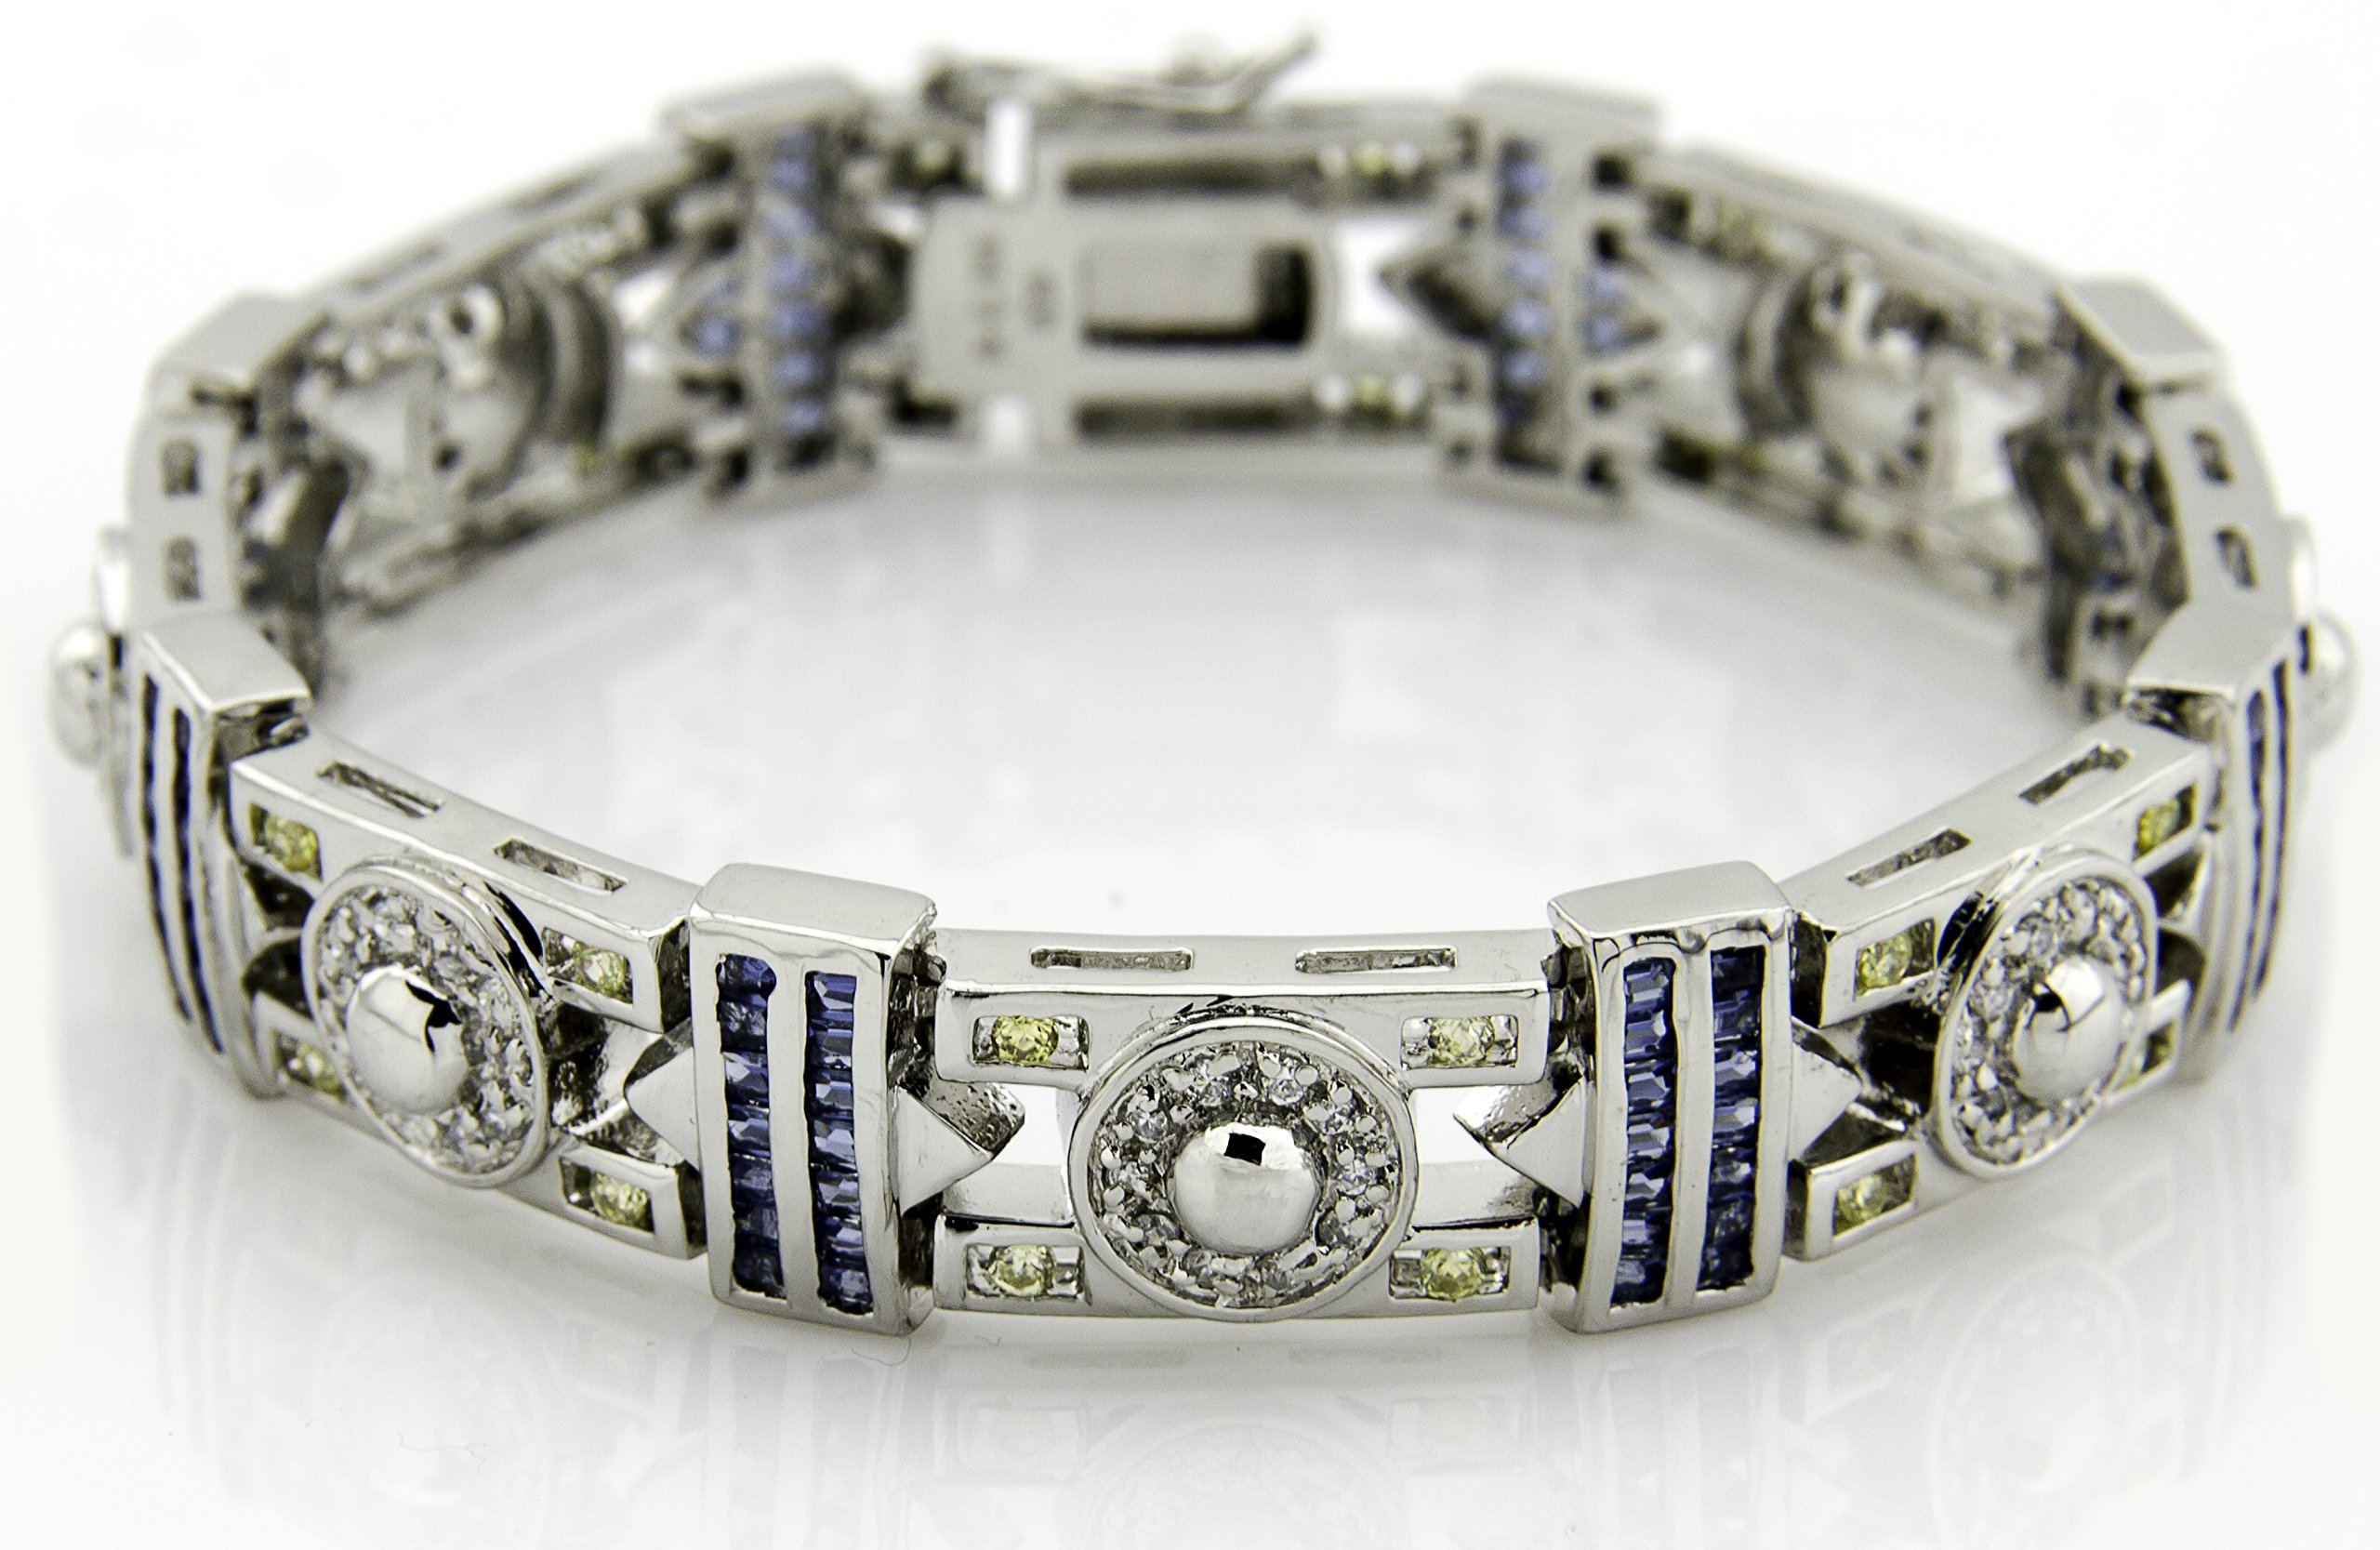 Men's Sterling Silver .925 Original design Bracelet with 140 blue baguette, 40 yellow round, and 100 white round Cubic Zirconia (CZ) Stones and Box Lock, Platinum Plated. Sizes available 8'' 9''